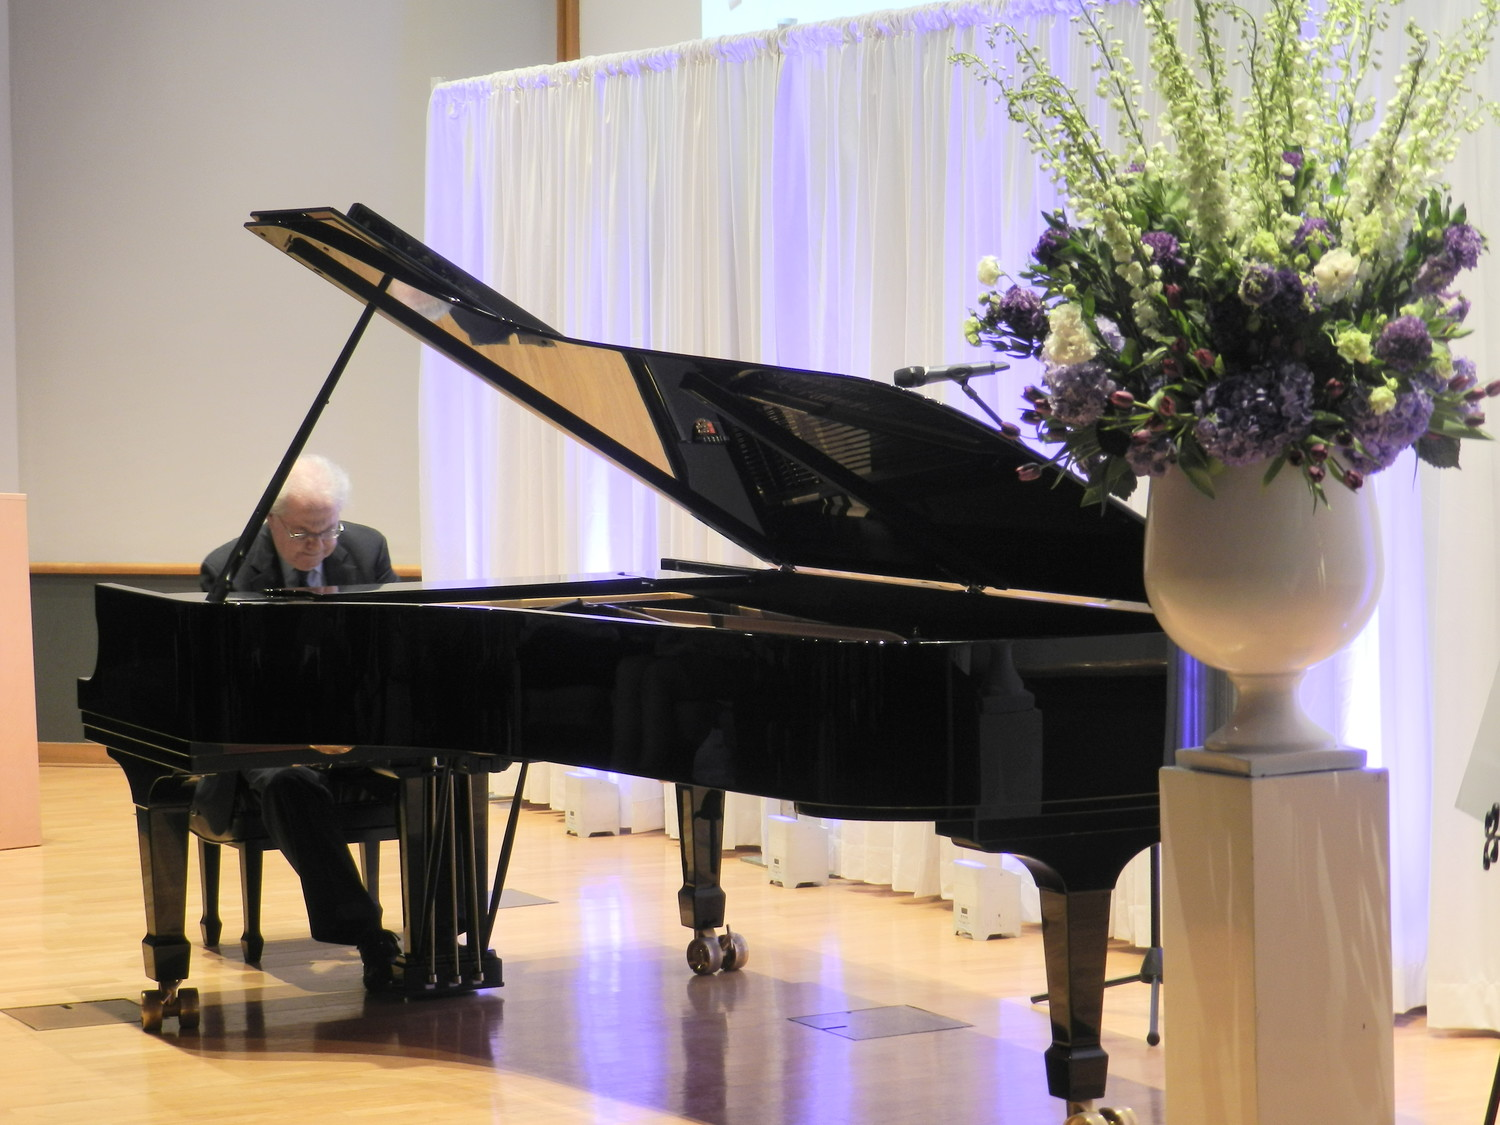 Classical pianist Emanuel Ax performed a few numbers for party guests as a gift to Dr. Watson